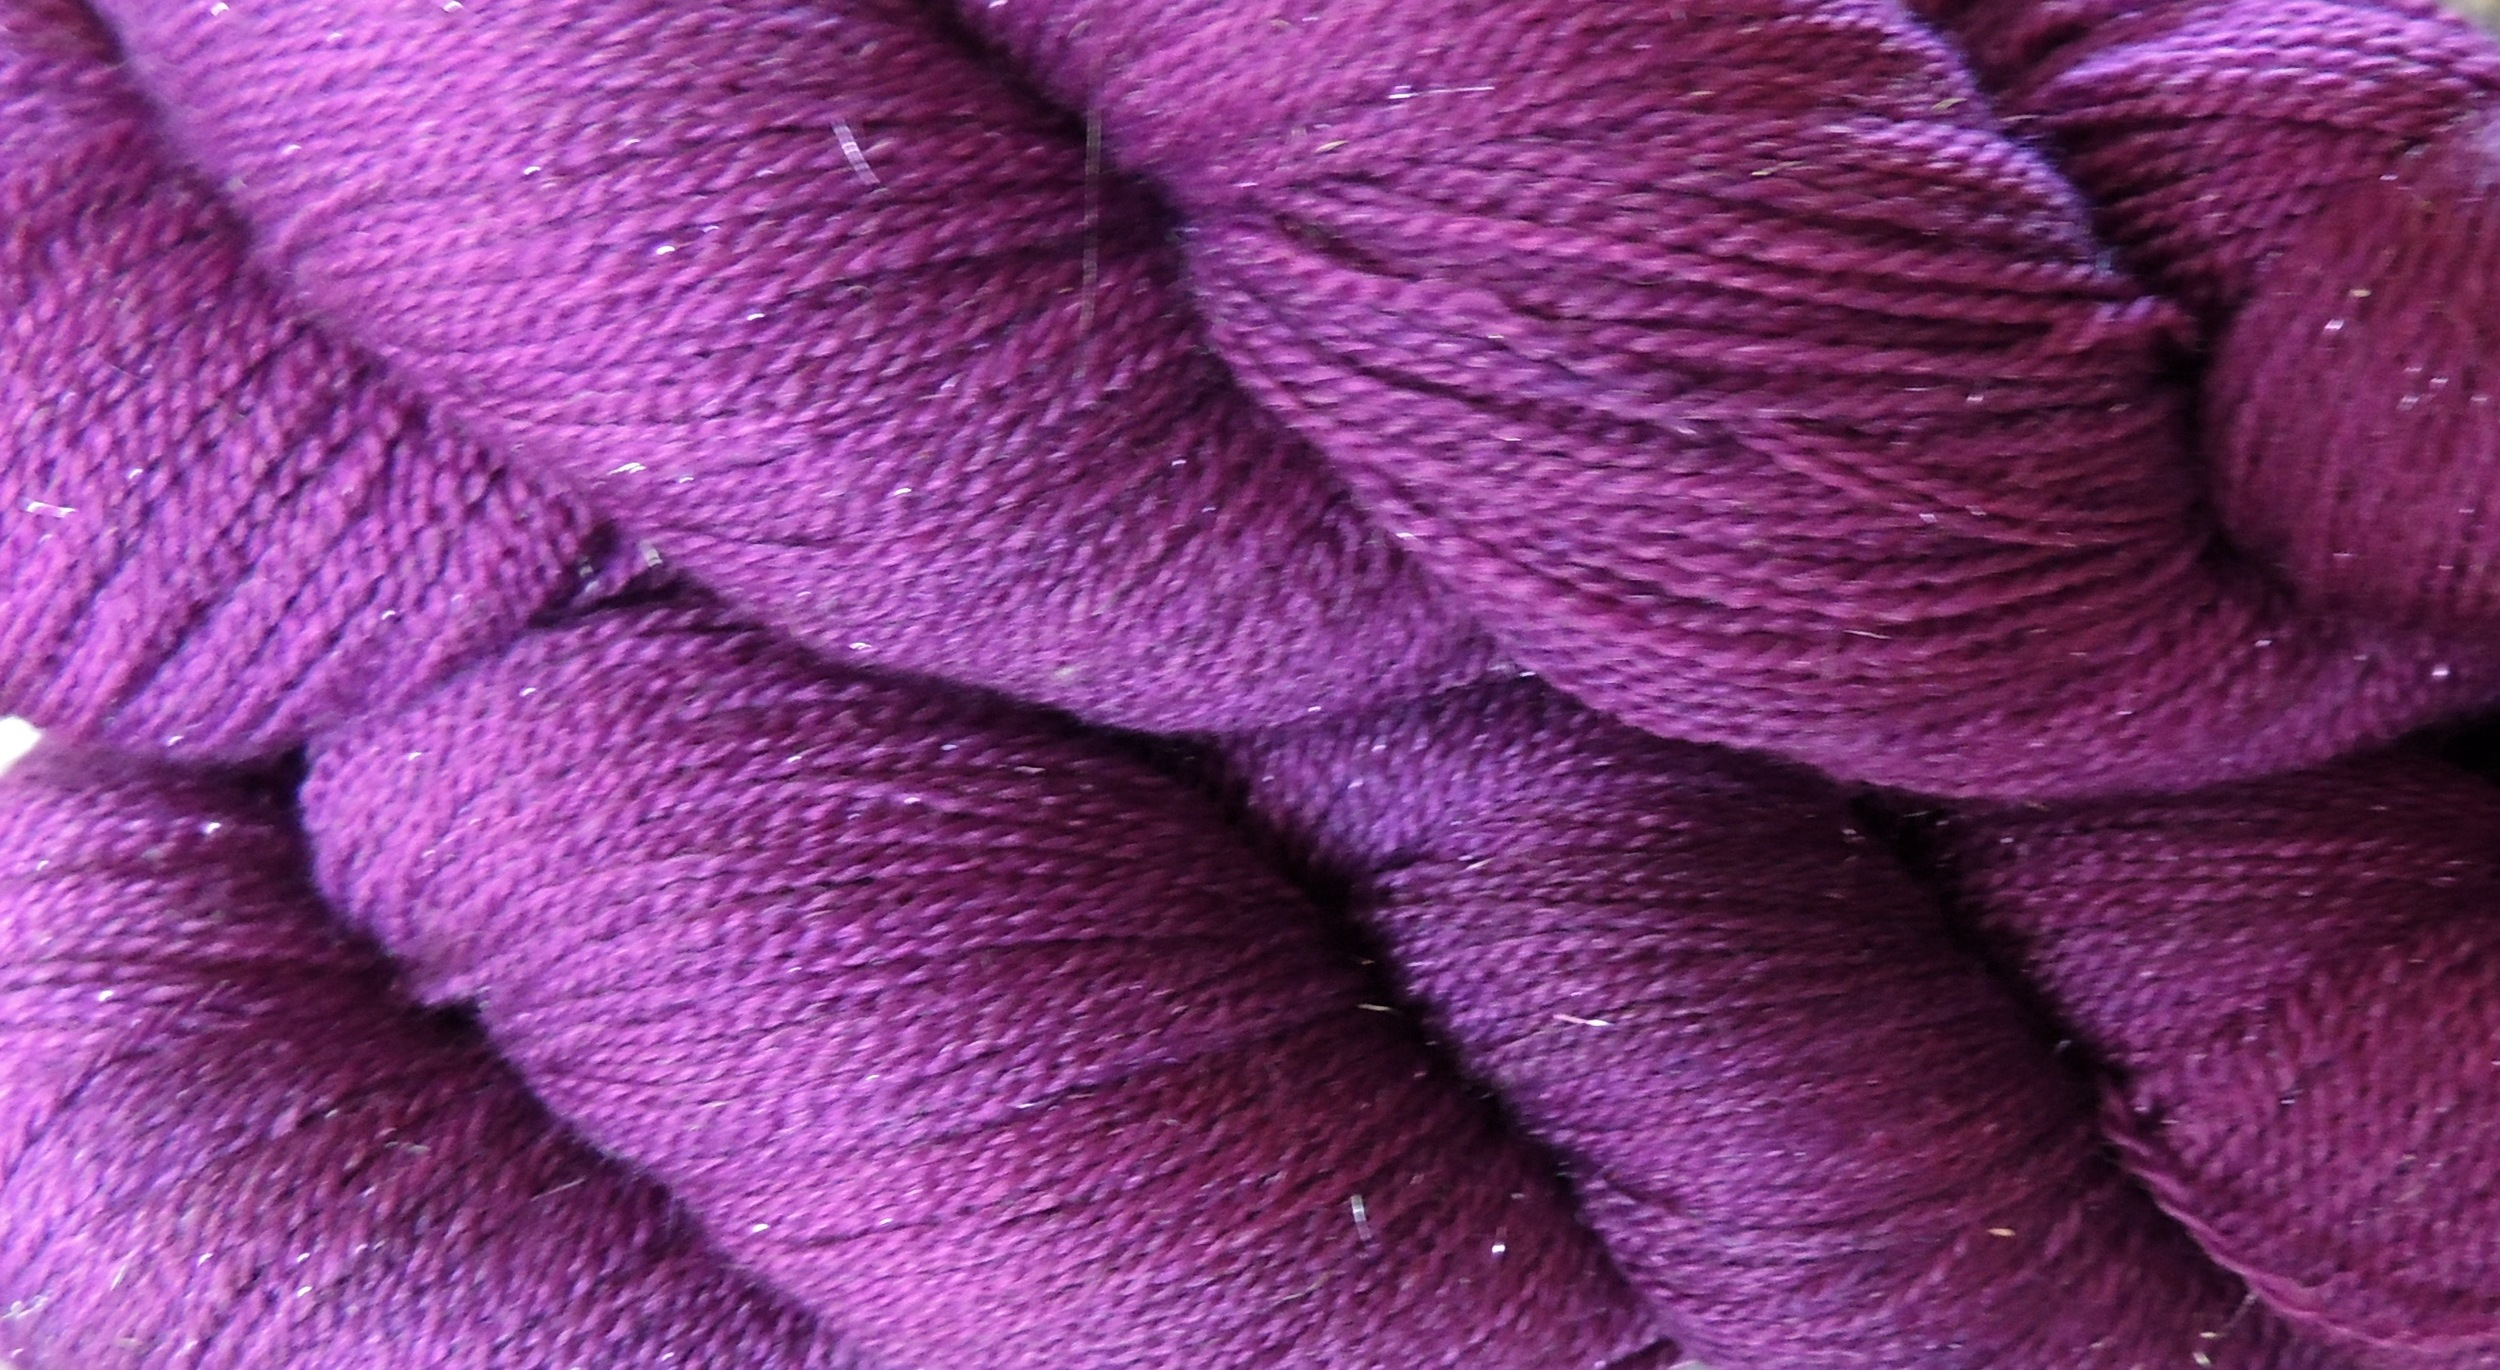 1xSublime Lace 100/%Extra Fine Merino Wool 25g 350m Sh 0403 RRP£5 29 Yarn Only